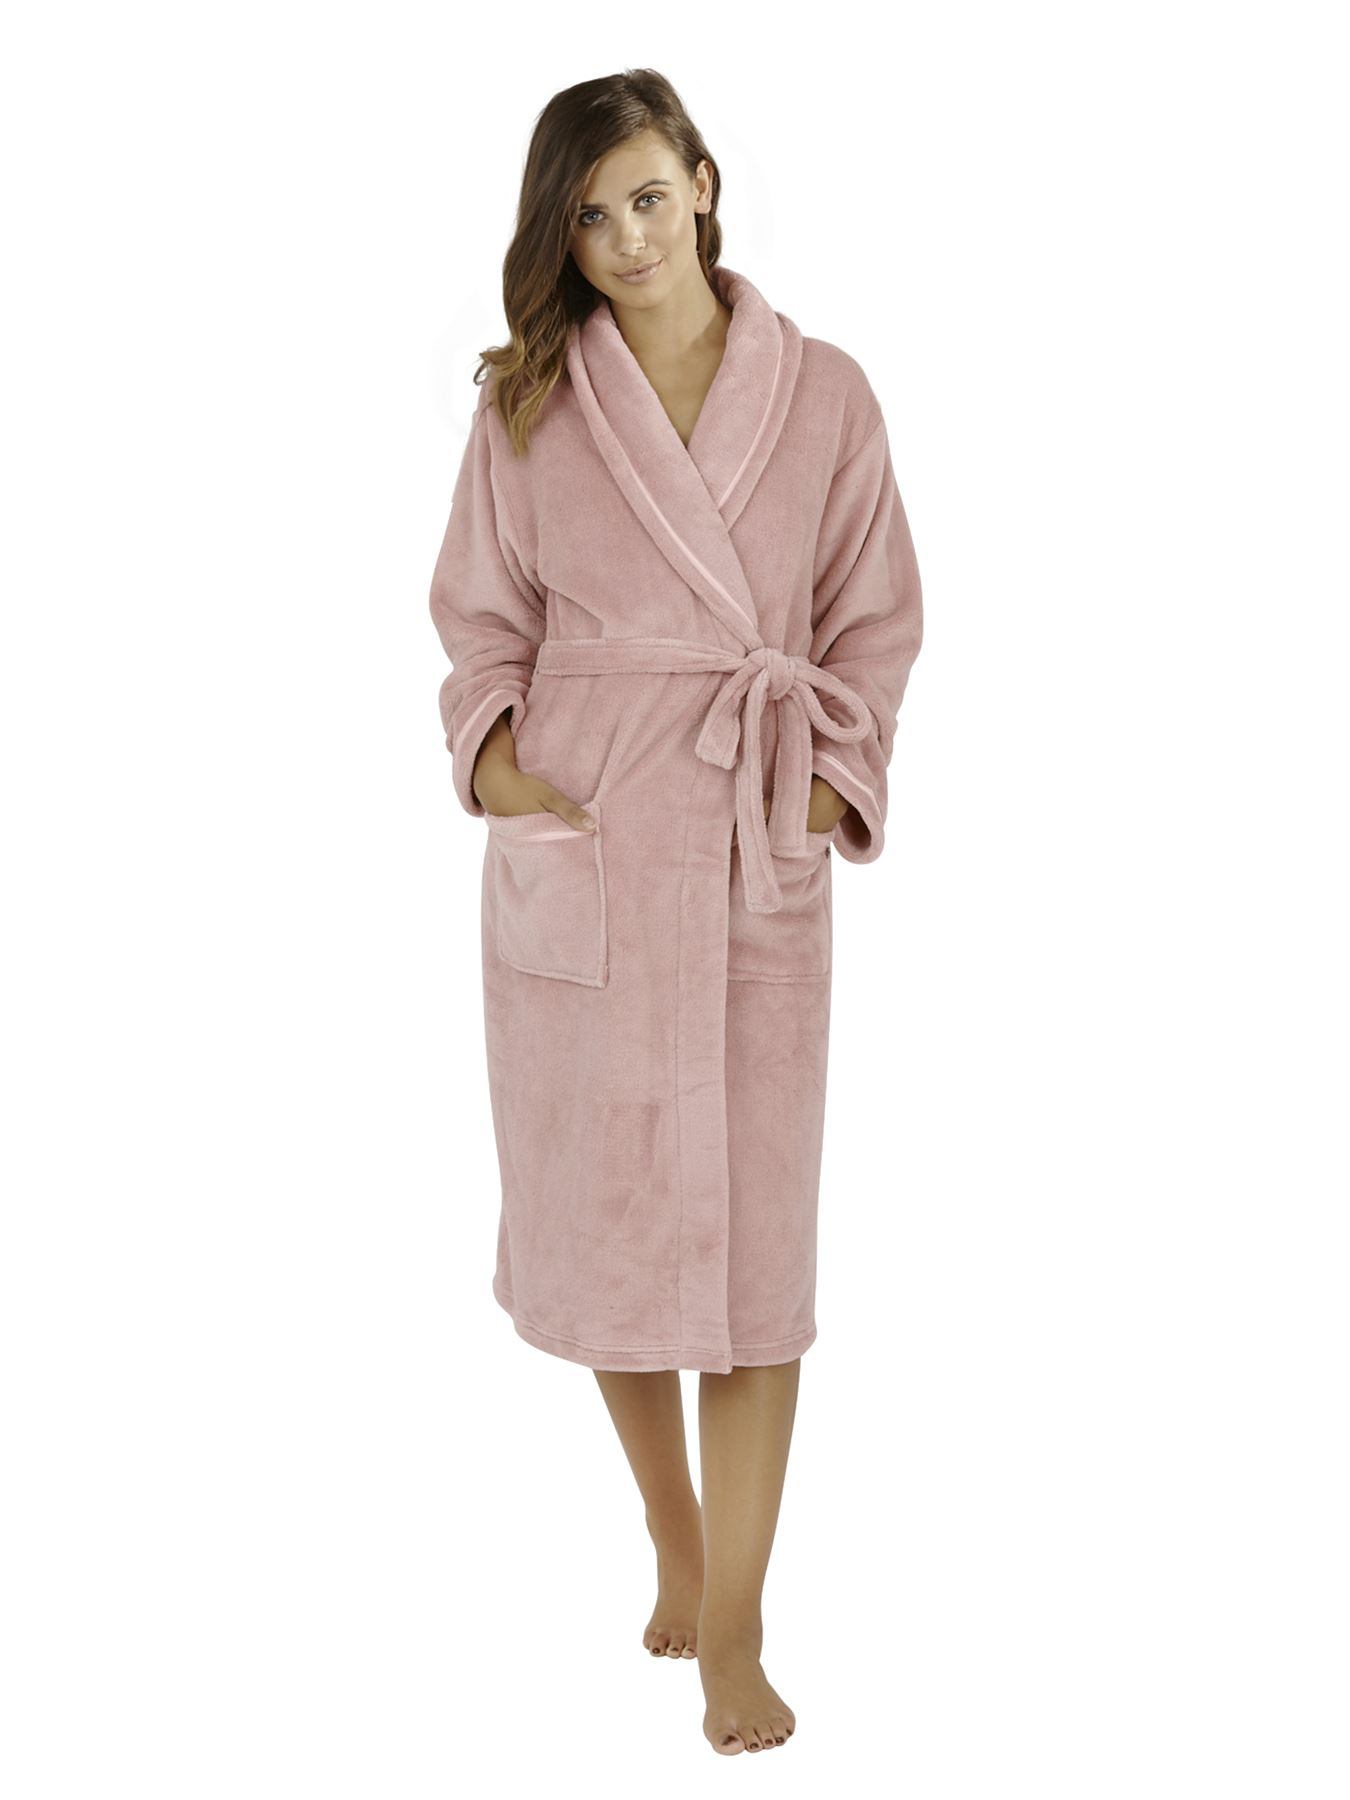 Find Towelling from the Womens department at Debenhams. Shop a wide range of Dressing gowns products and more at our online shop today.